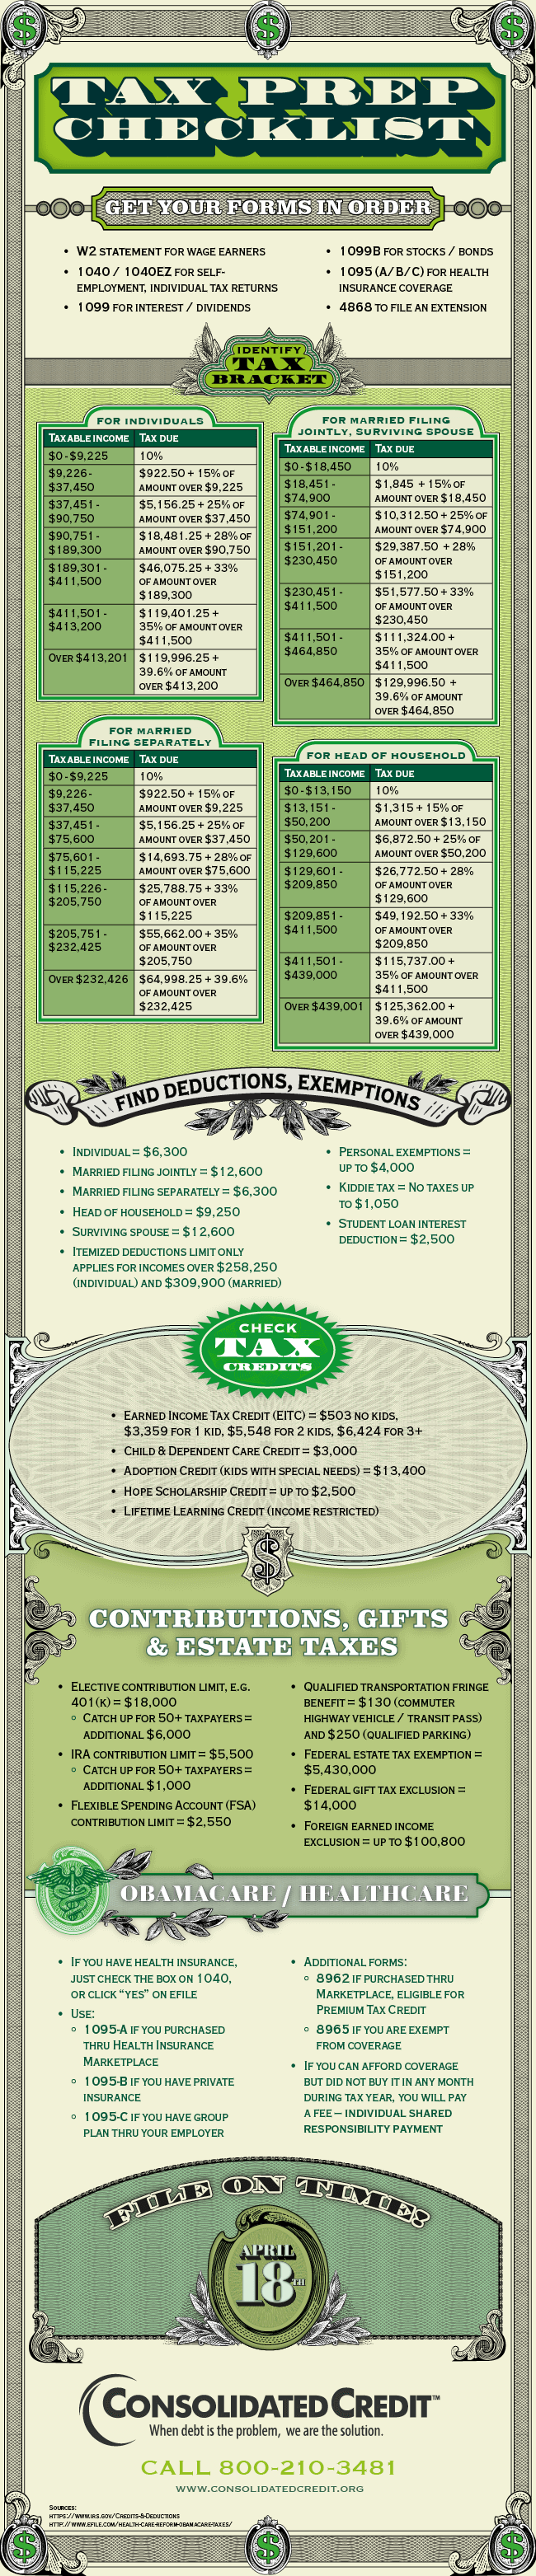 Graphic displaying an easy checklist for 2015 income taxes